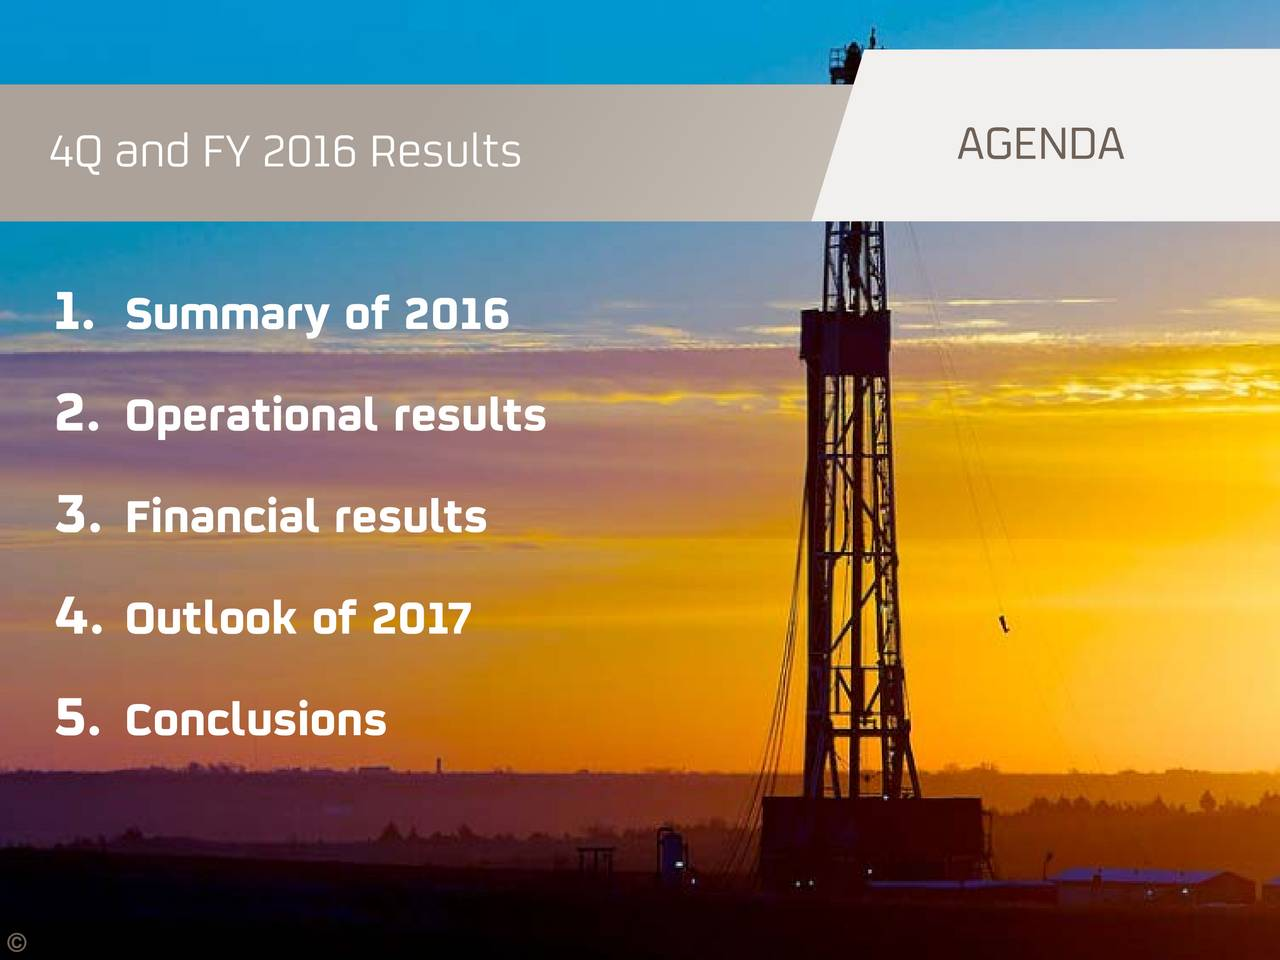 1. Summary of 2016 2. Operational results 3. Financial results 4. Outlook of 2017 5. Conclusions